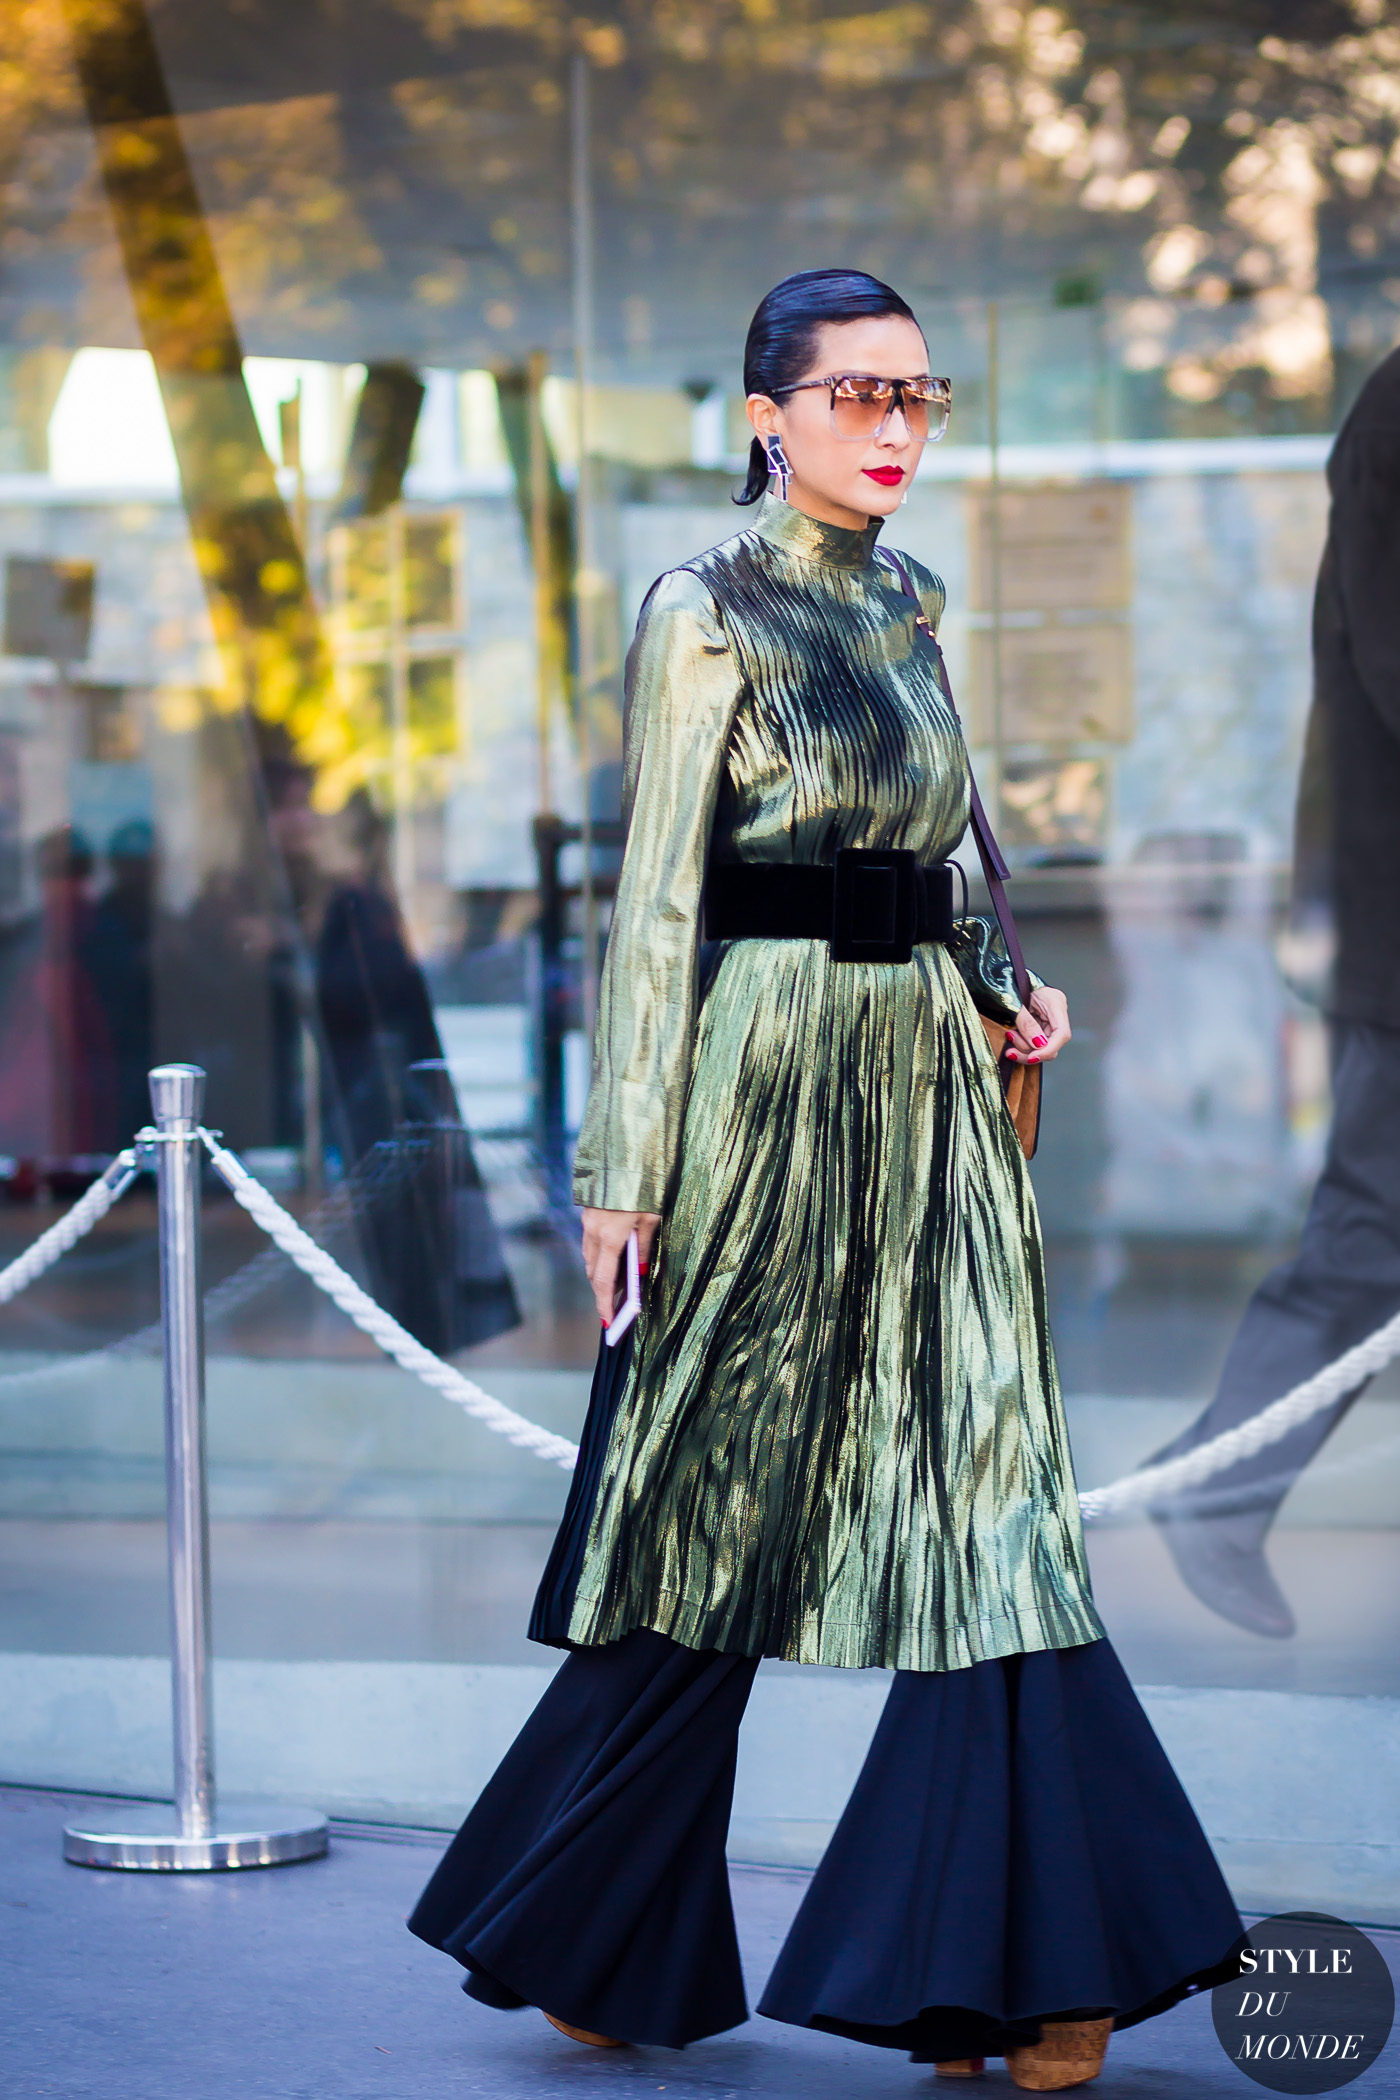 After-Loewe-by-STYLEDUMONDE-Street-Style-Fashion-Photography0E2A4418